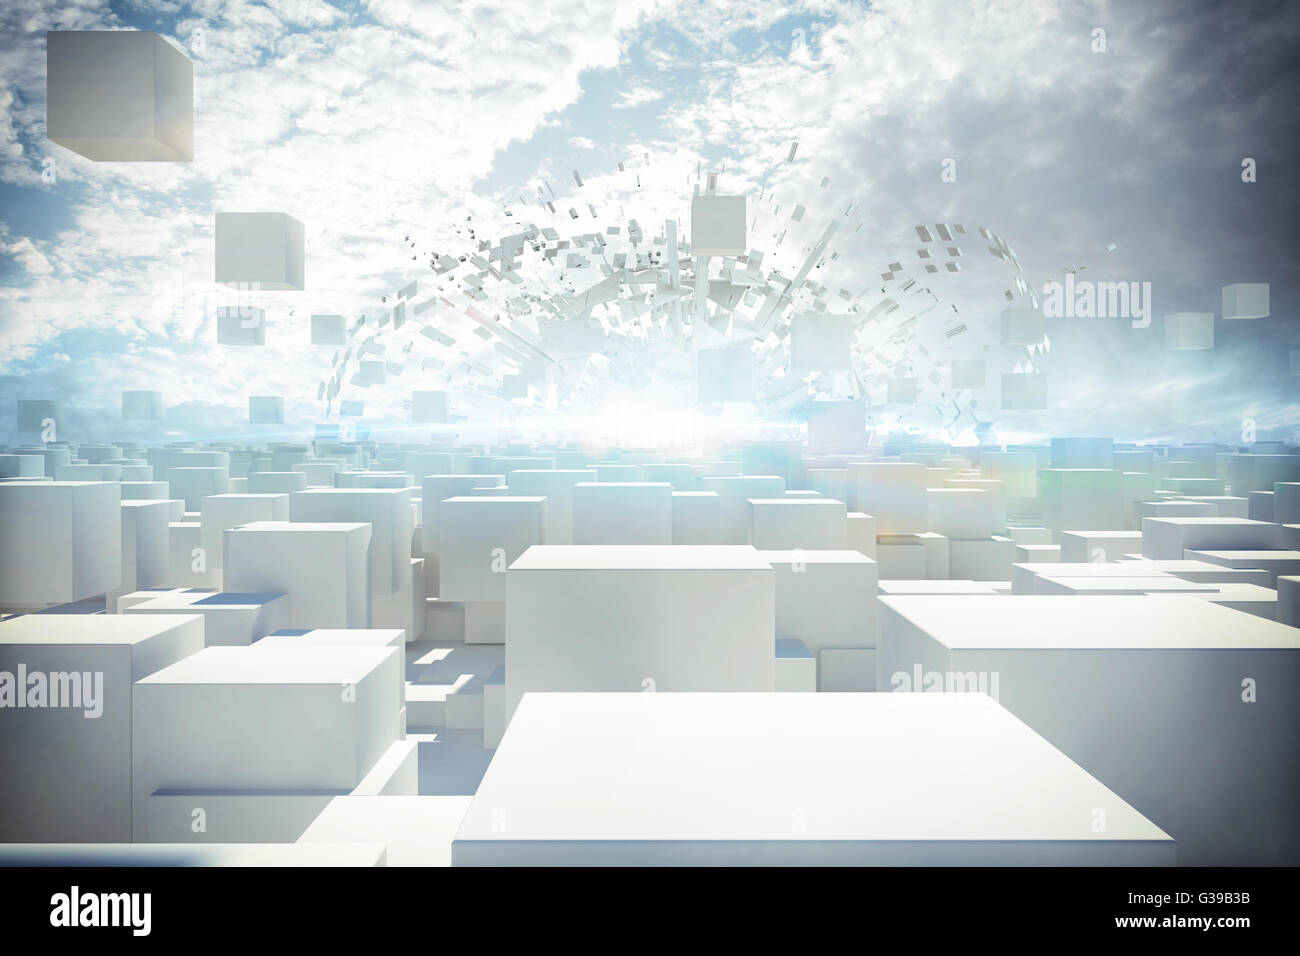 Ville futuriste le rendu 3D Photo Stock